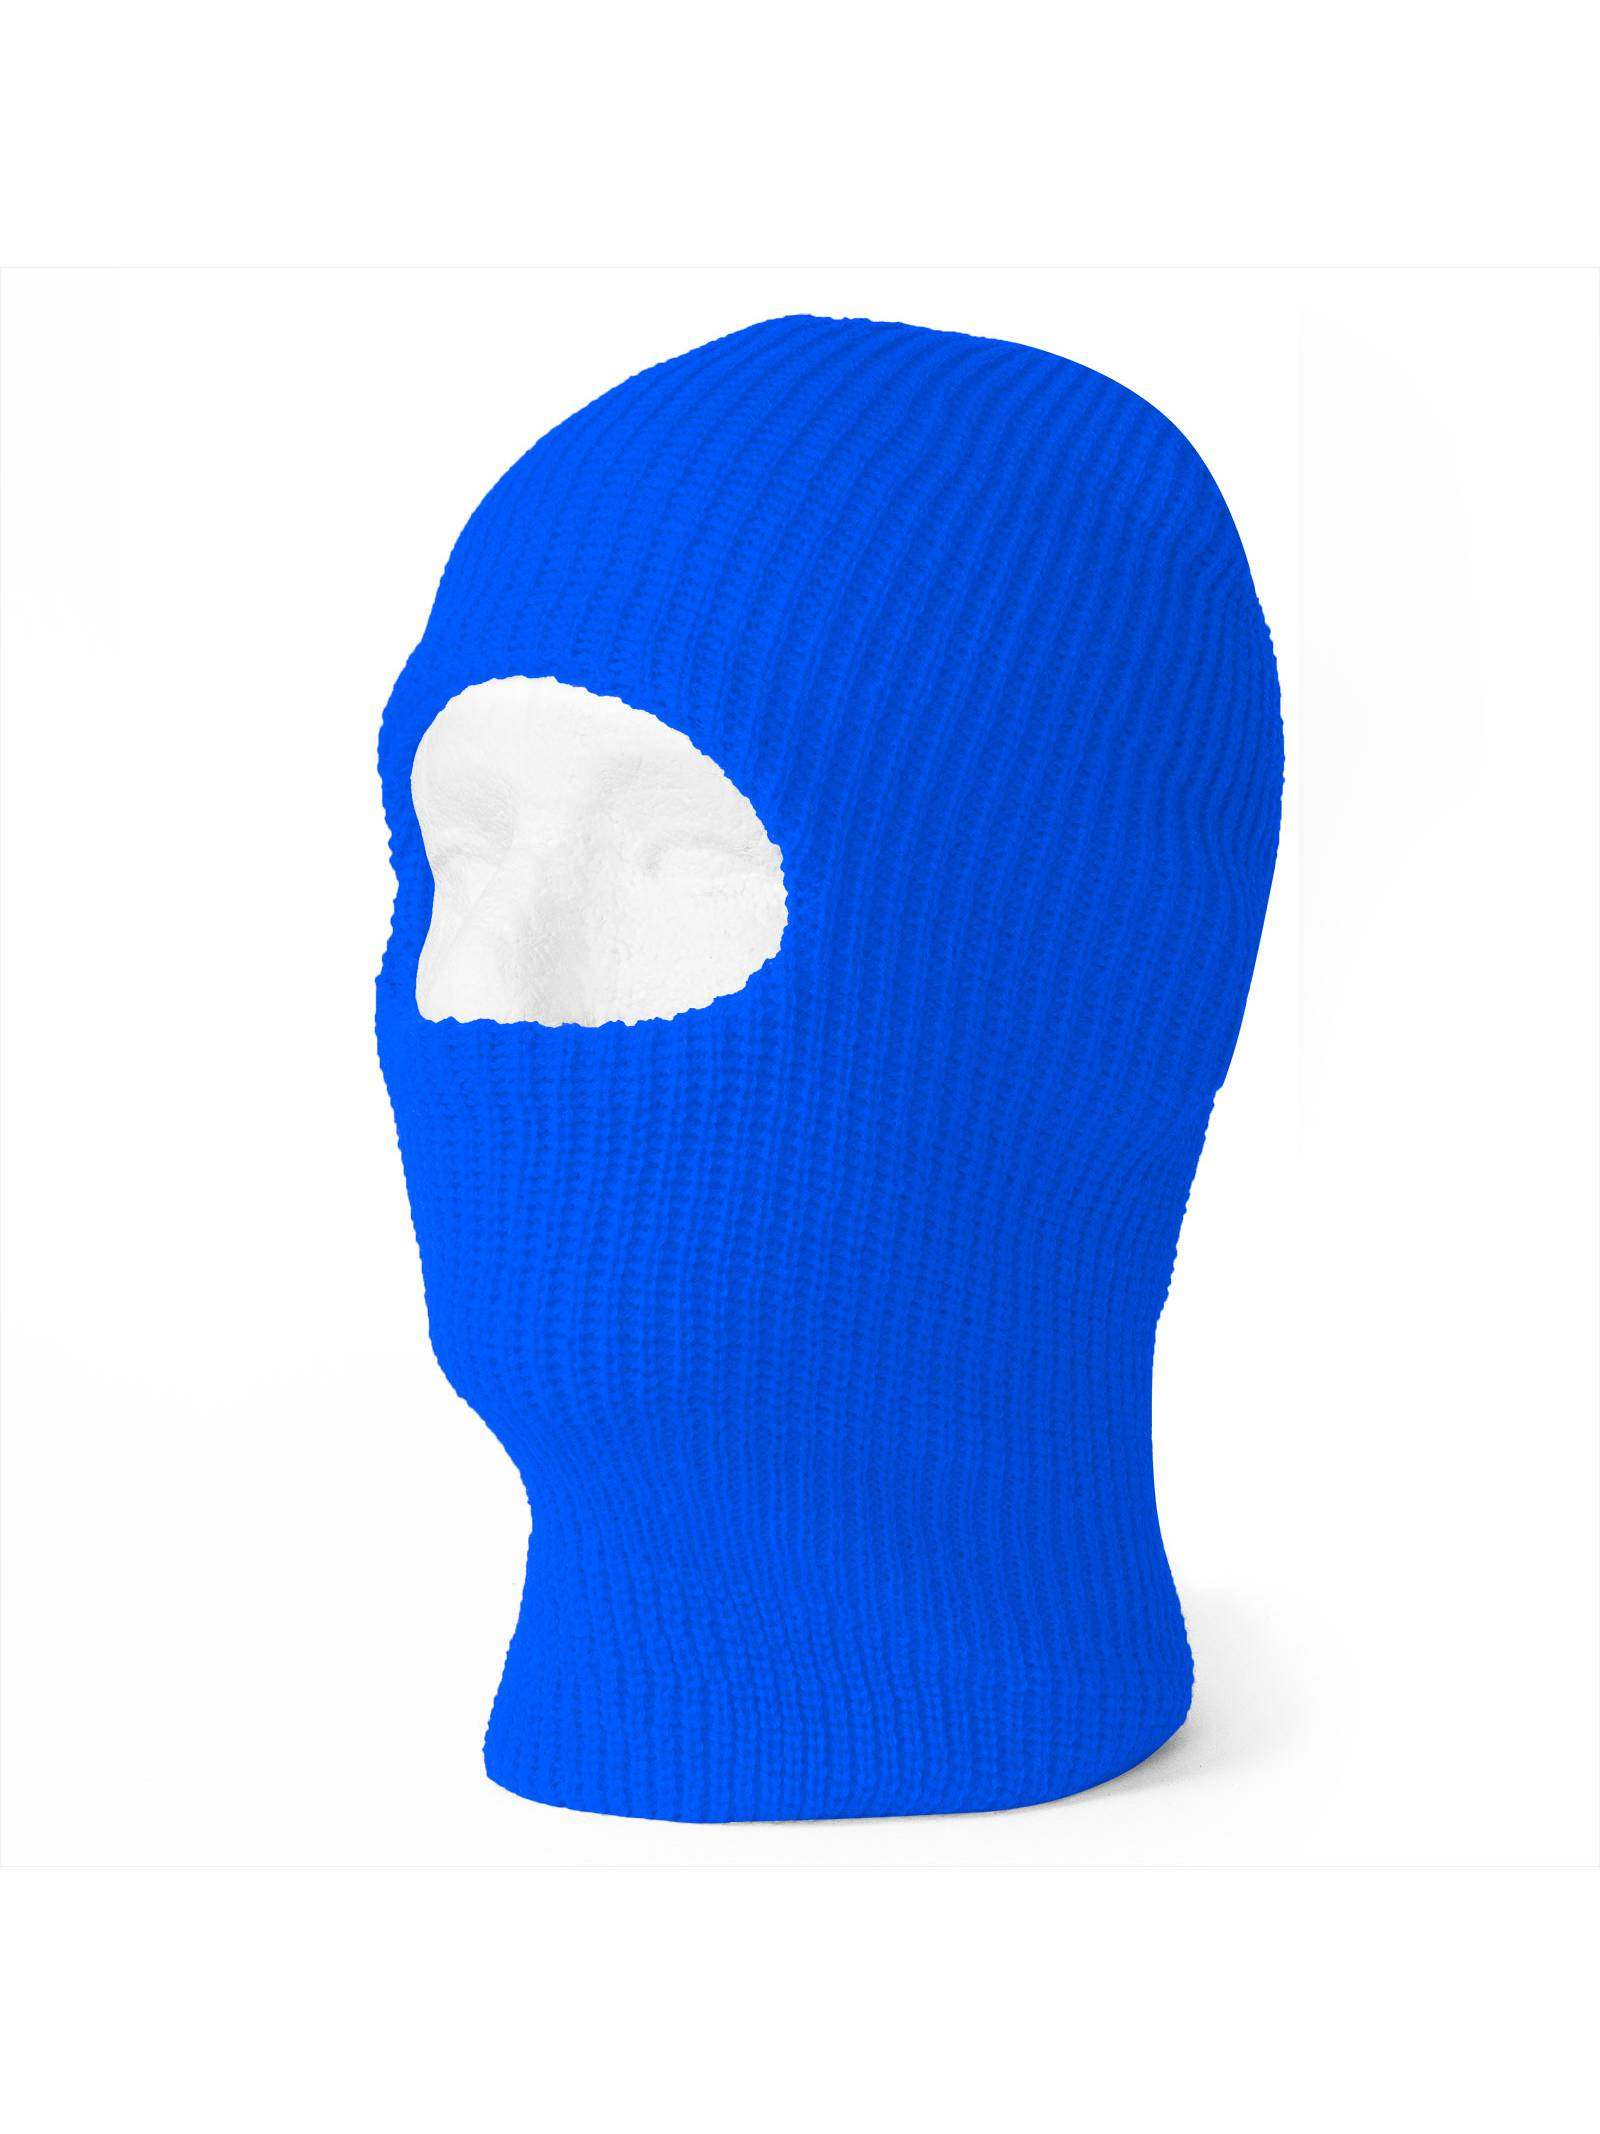 TopHeadwear One 1 Hole Ski Mask Royal by TOP HEADWEAR